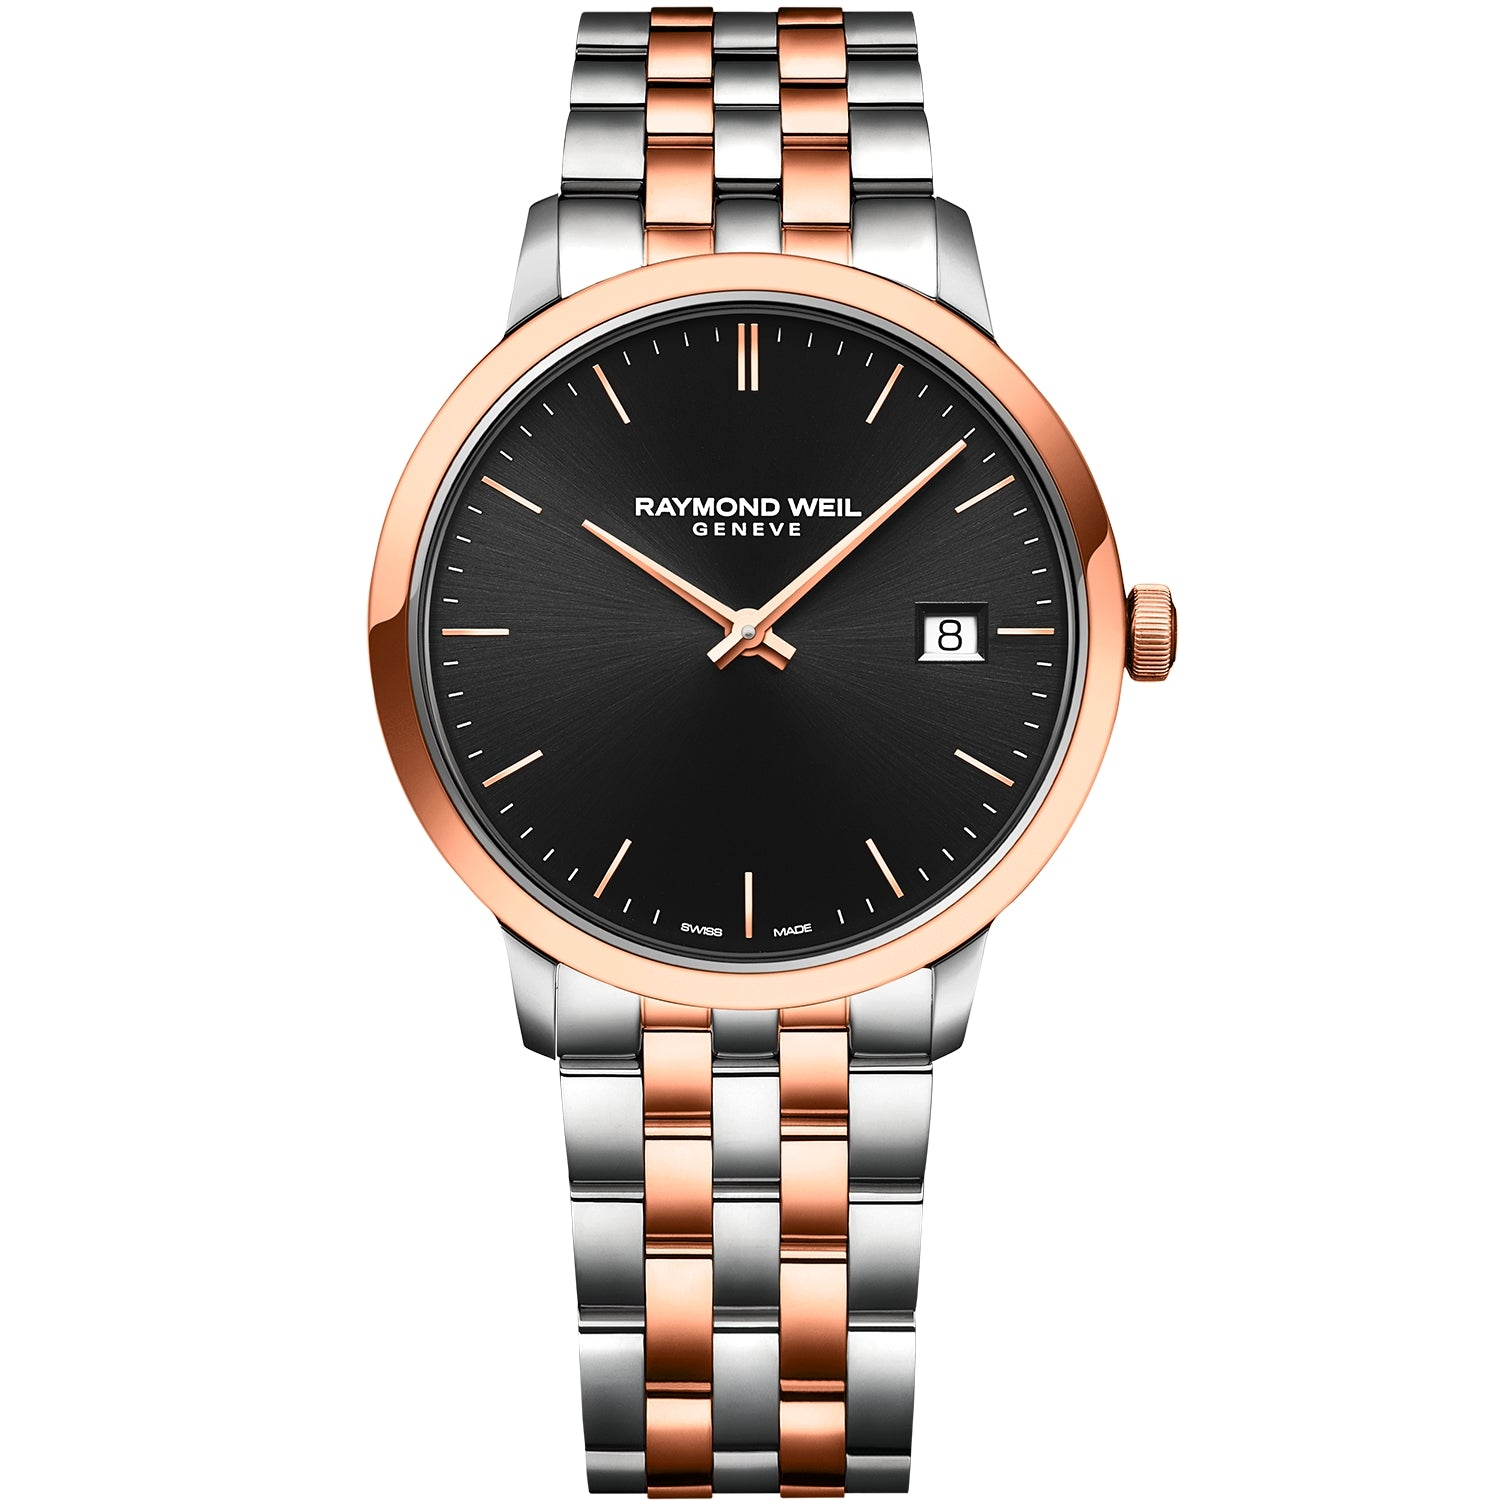 Toccata Men's Classic Two-tone Black Dial Quartz Watch 5485-SP5-20001